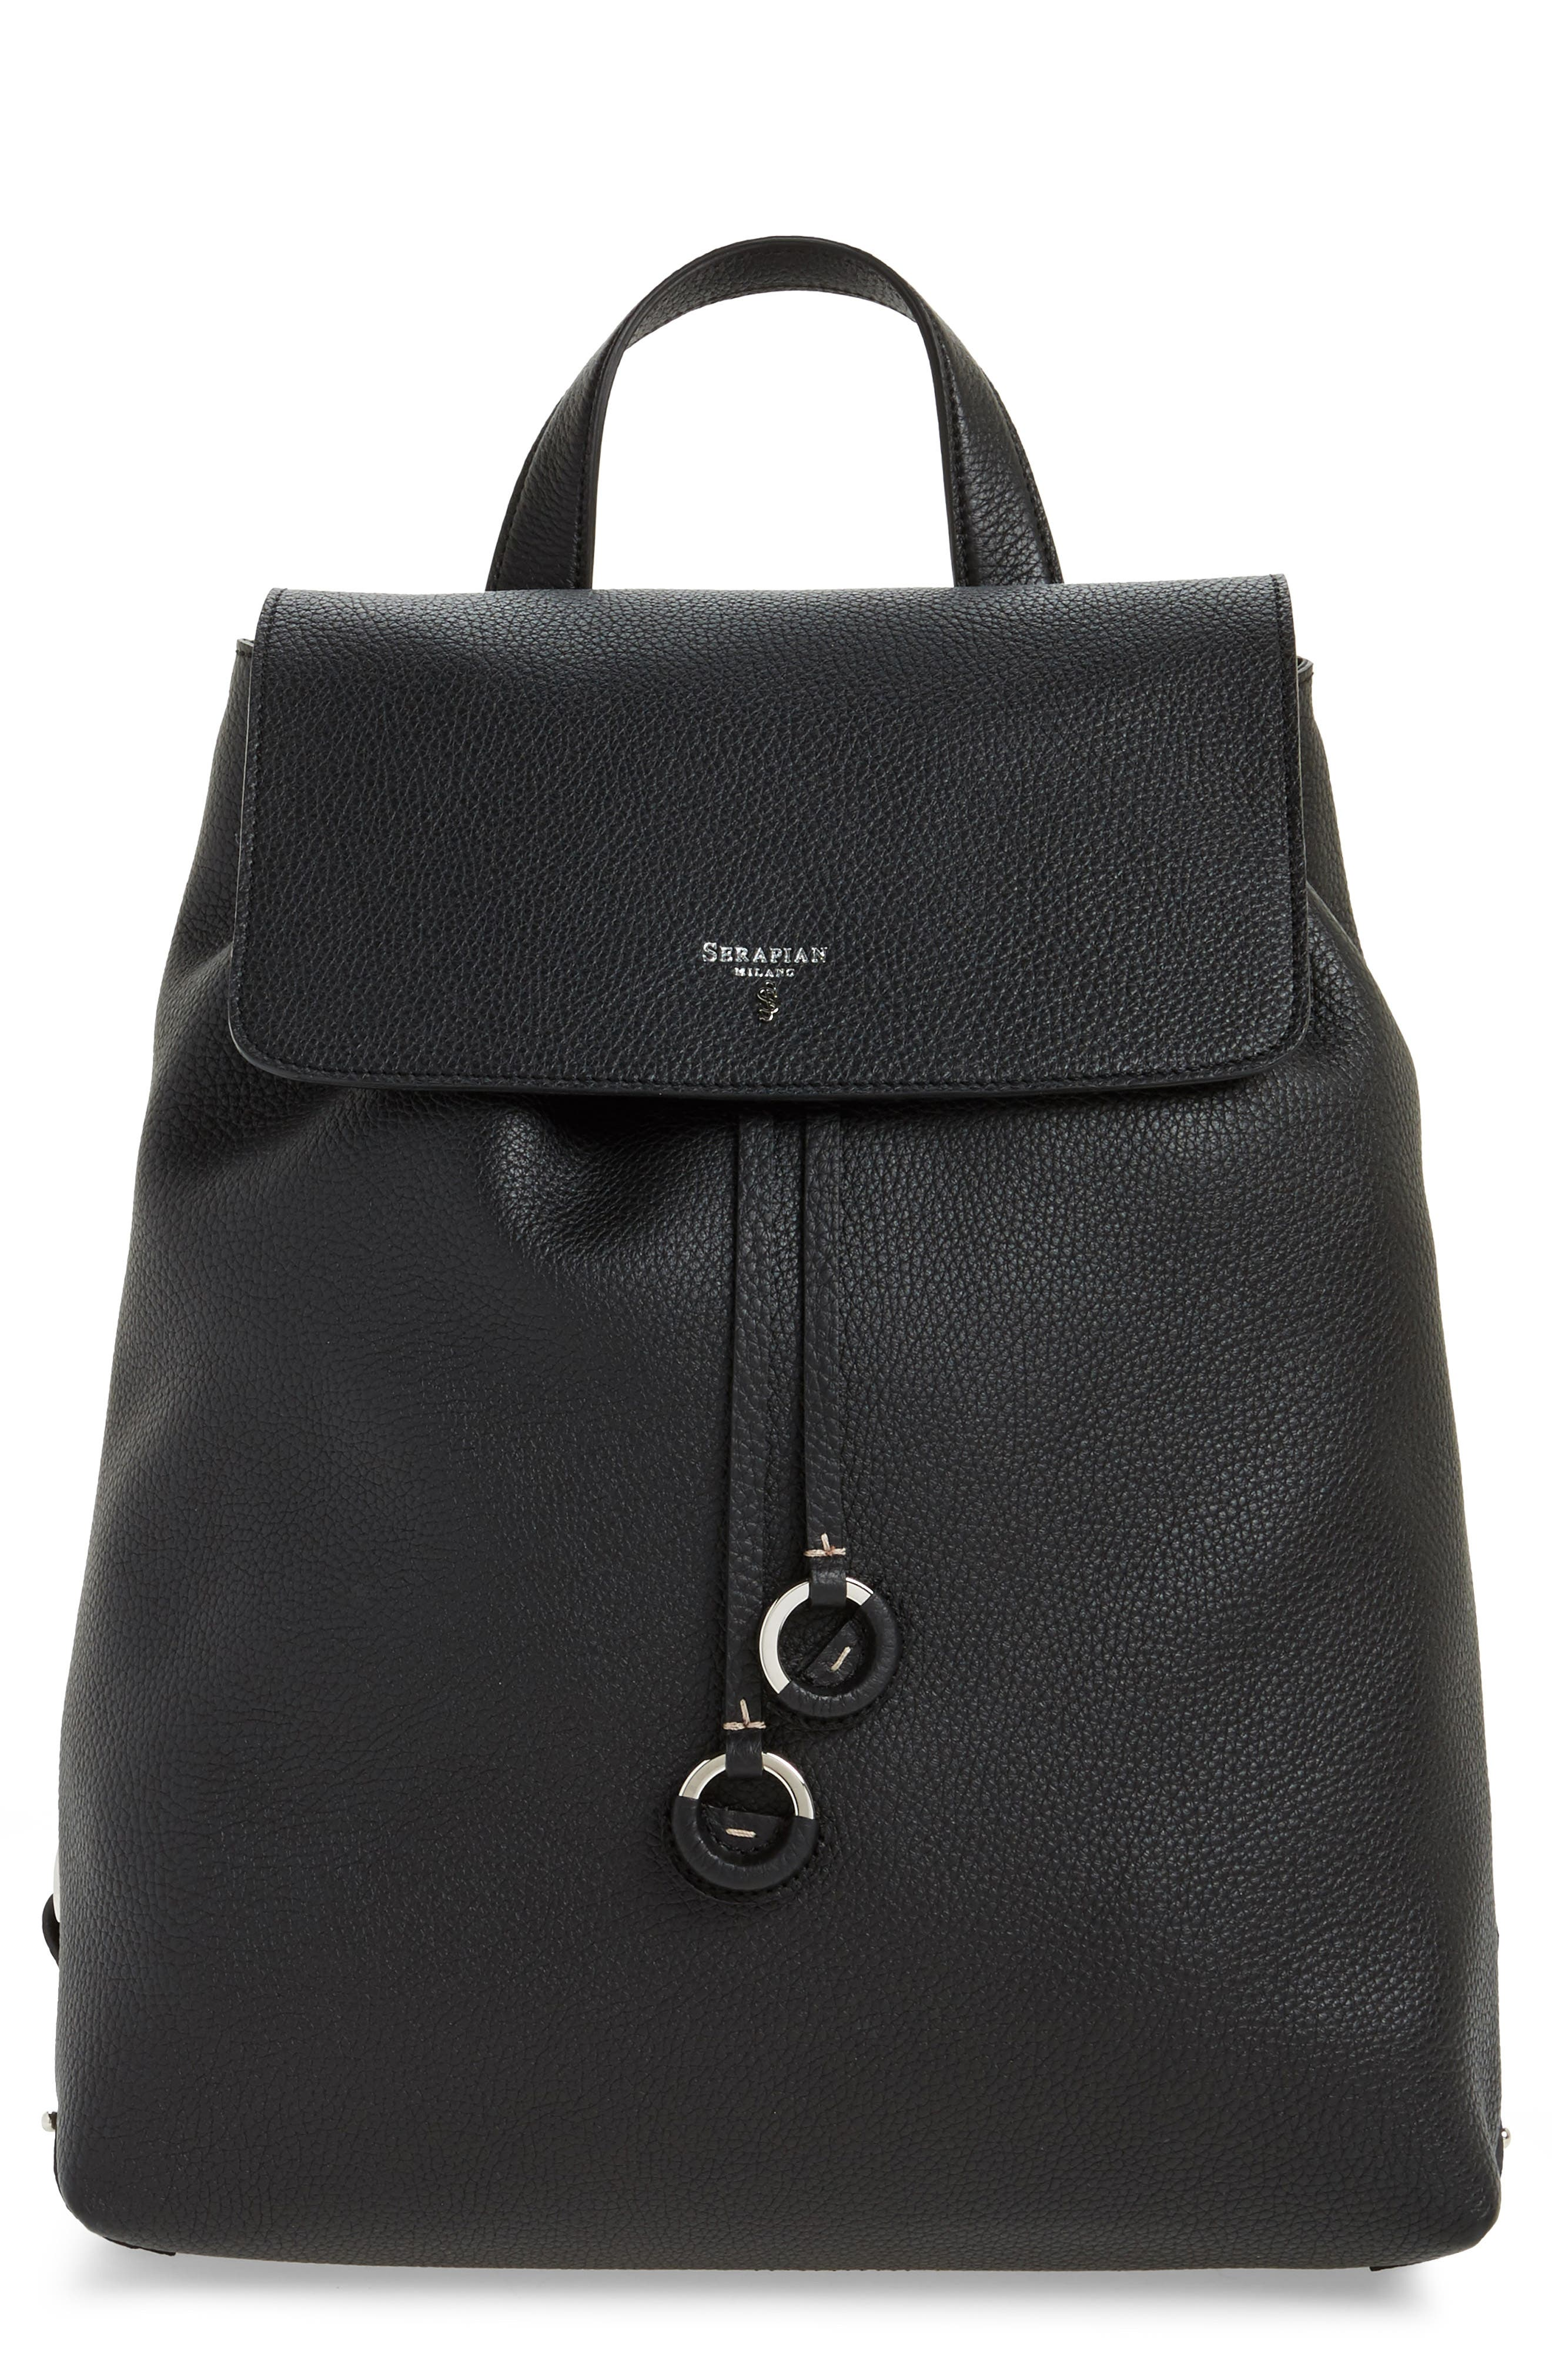 Carmen Cachemire Leather Backpack,                             Main thumbnail 1, color,                             001